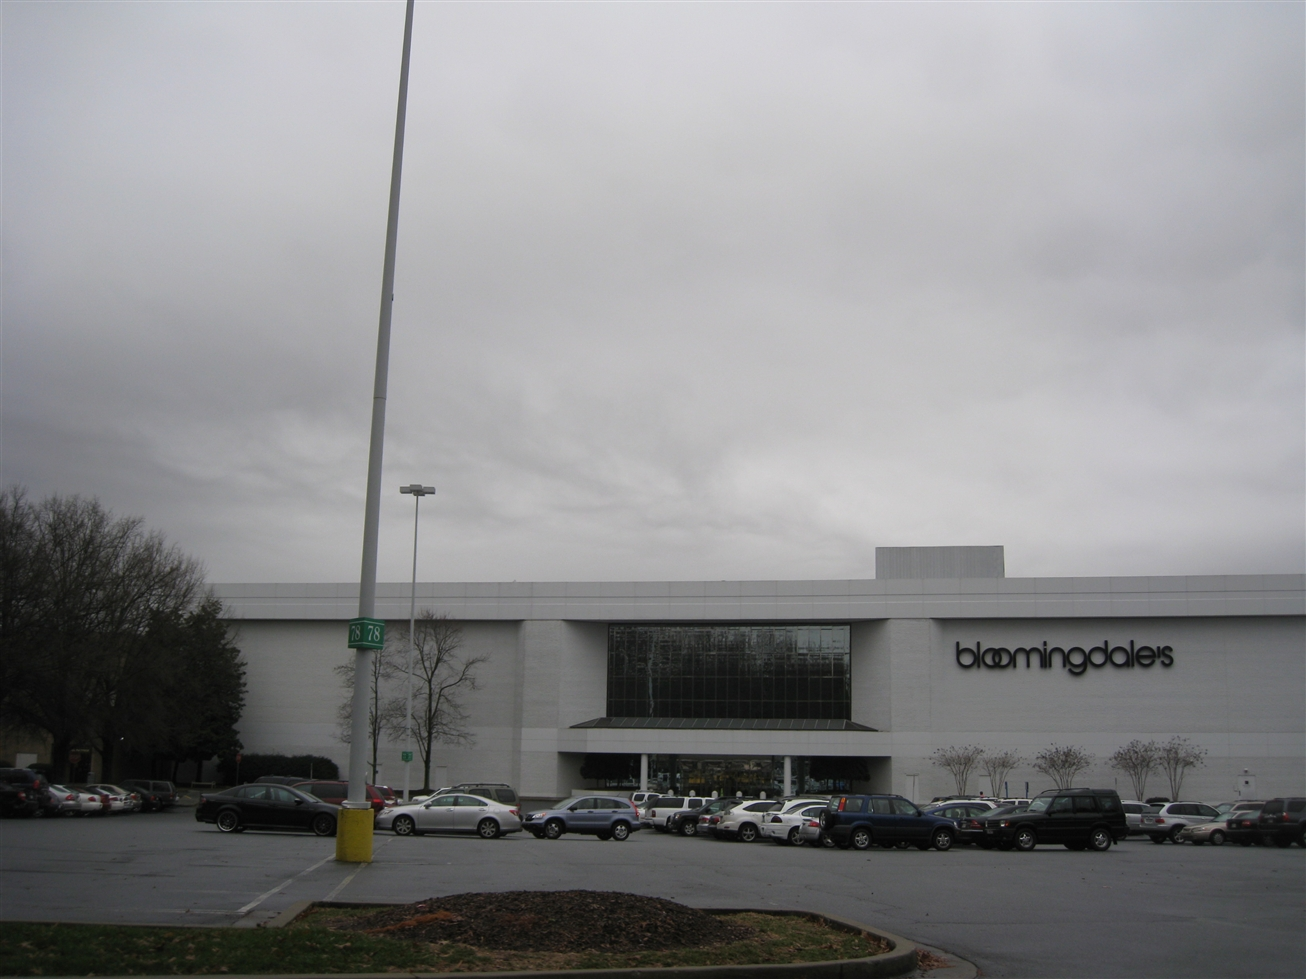 Perimeter Mall Bloomingdales in Dunwoody, GA